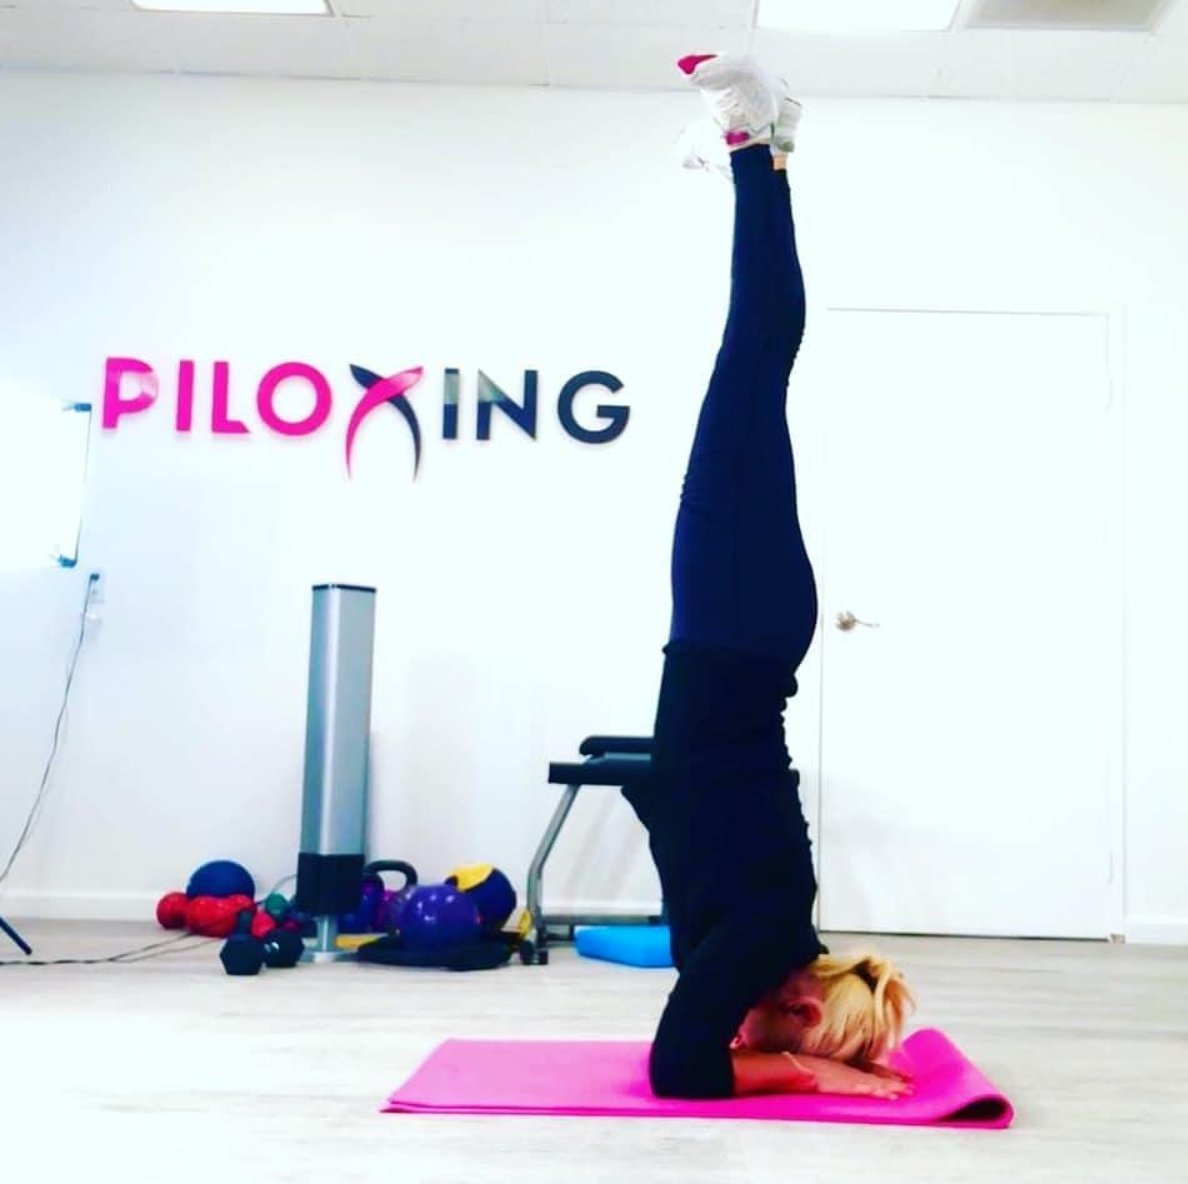 When the world is literally upside down. It can be hard to continue with our own exercise routine! Join our #PiloxingOnDemand classes at: piloxing.com/videos/on-dema… #Piloxing #virtualfitness #virtualtraining #athomeworkout